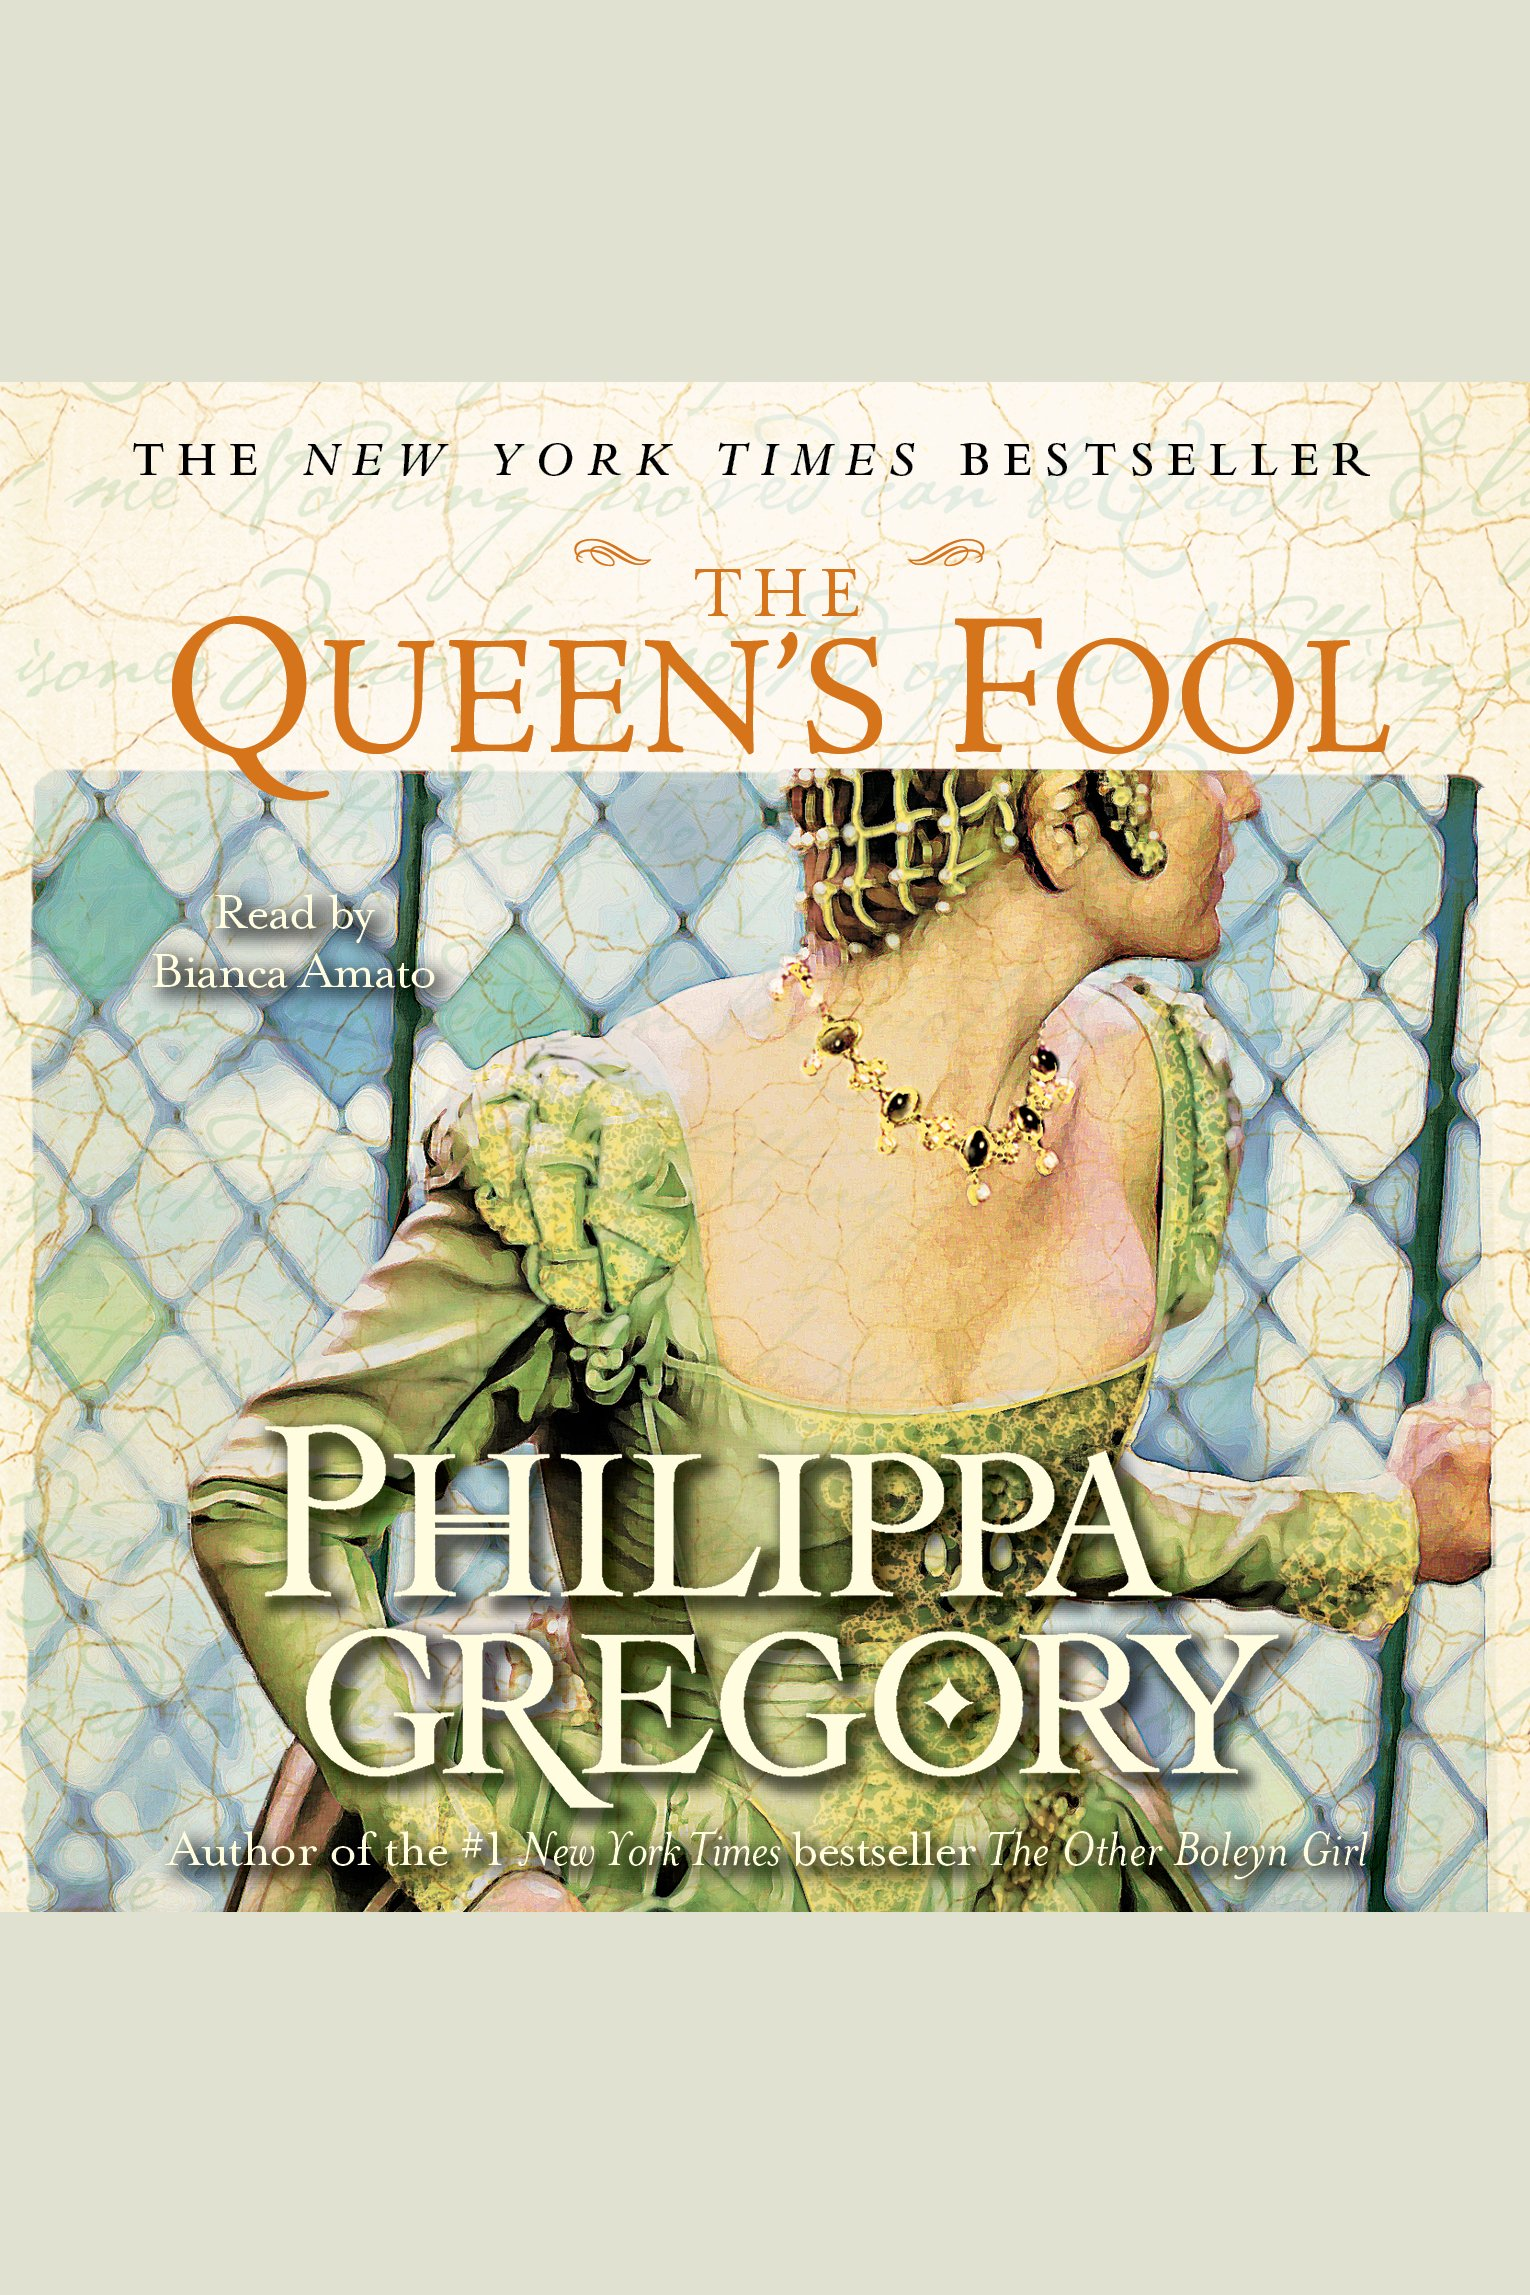 Queen's fool cover image